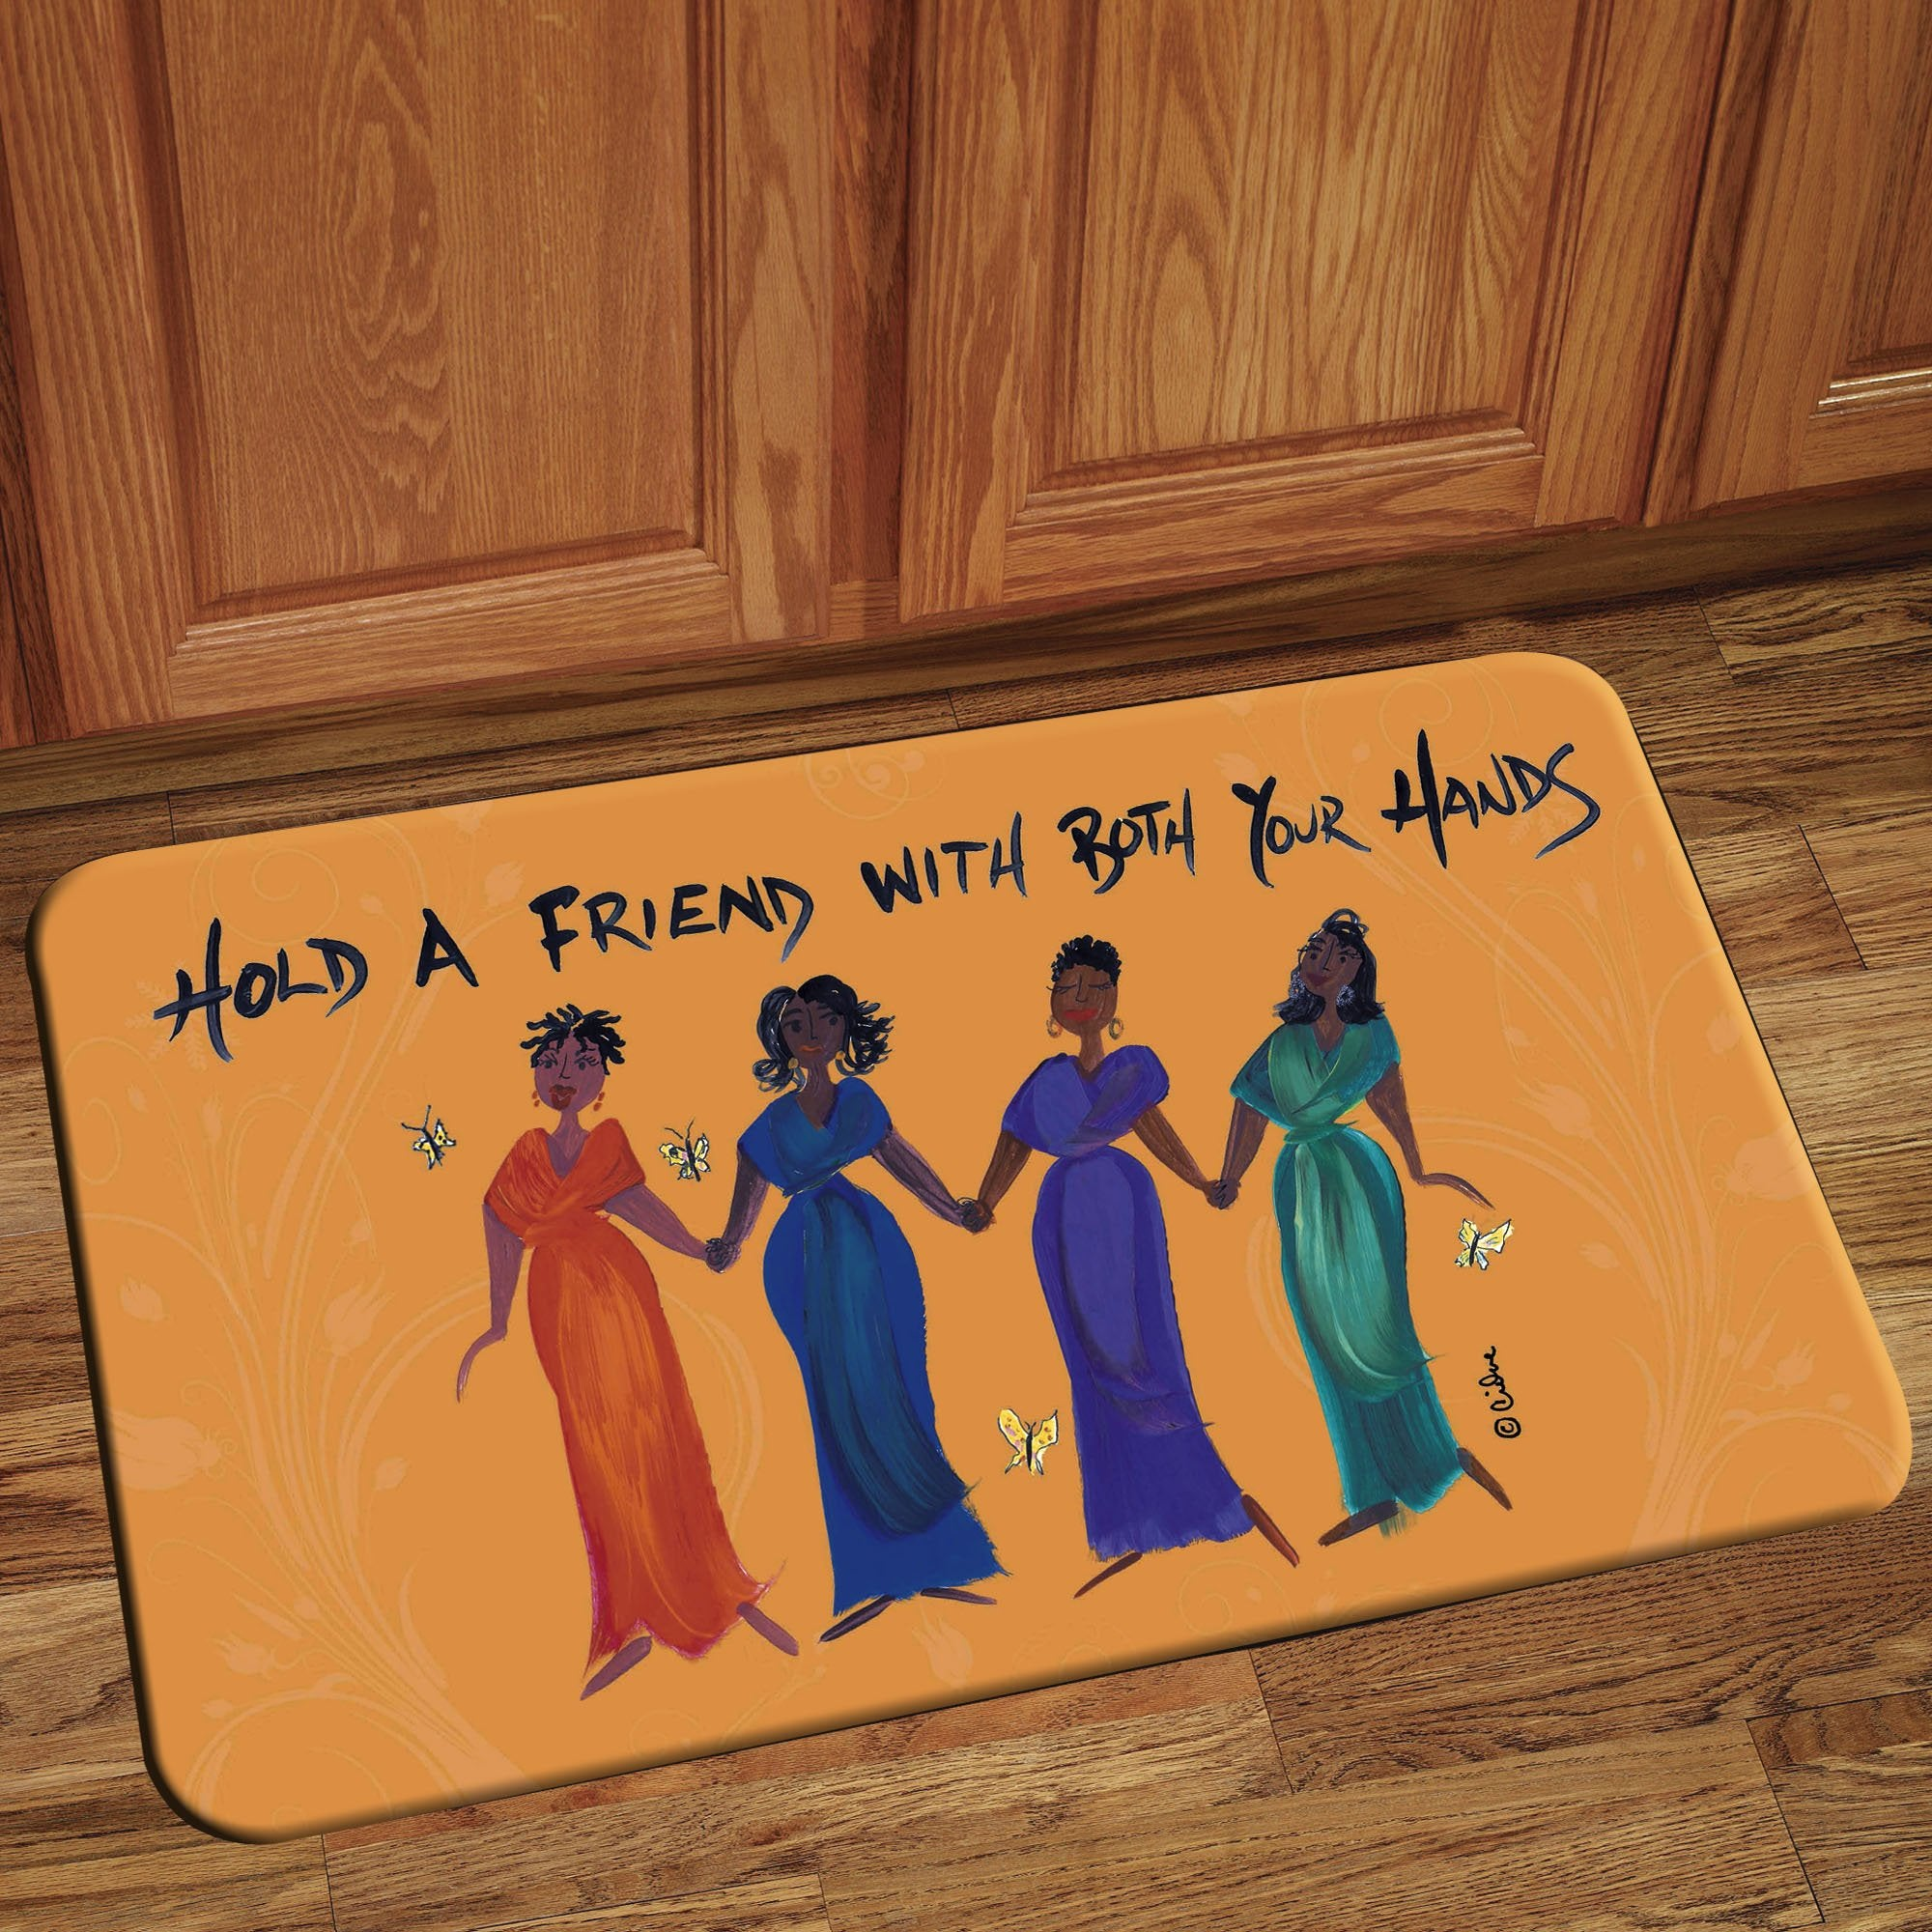 Hold a Friend With Both Hands: Cidne Wallace Interior Floor Mats by Shades of Color